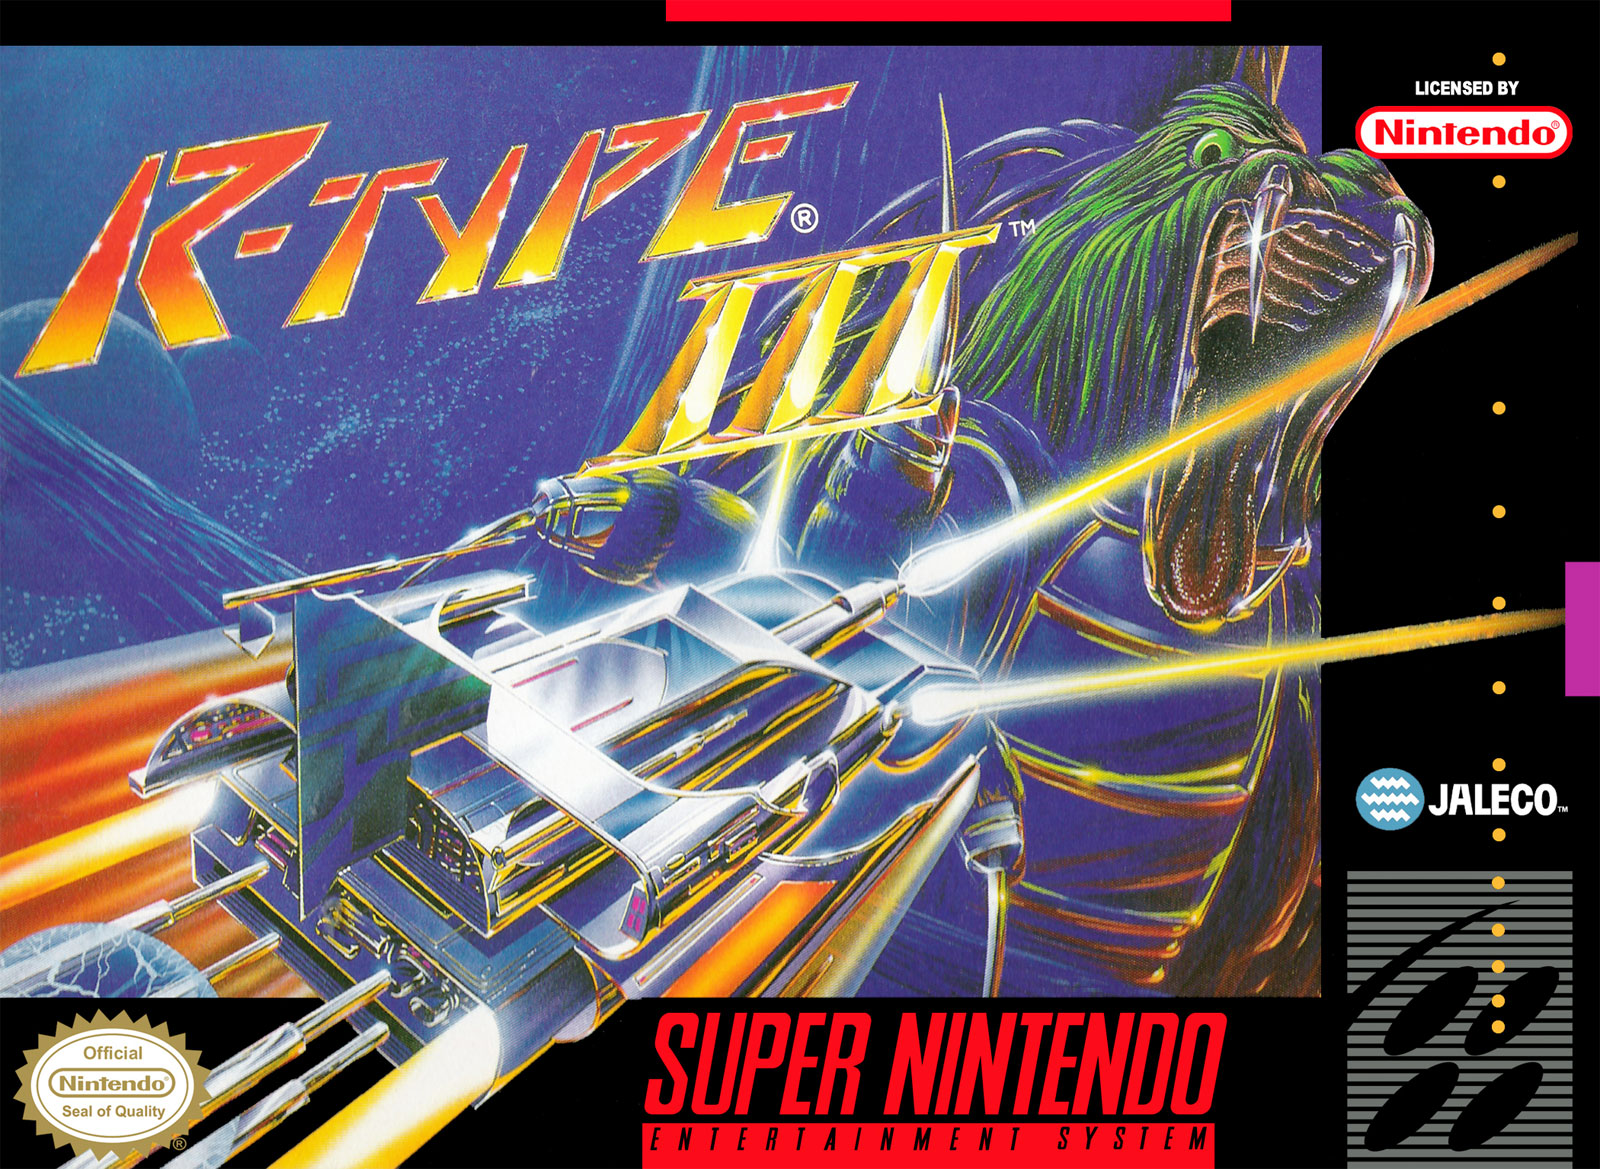 R-Type III by Irem & Jaleco for SNES